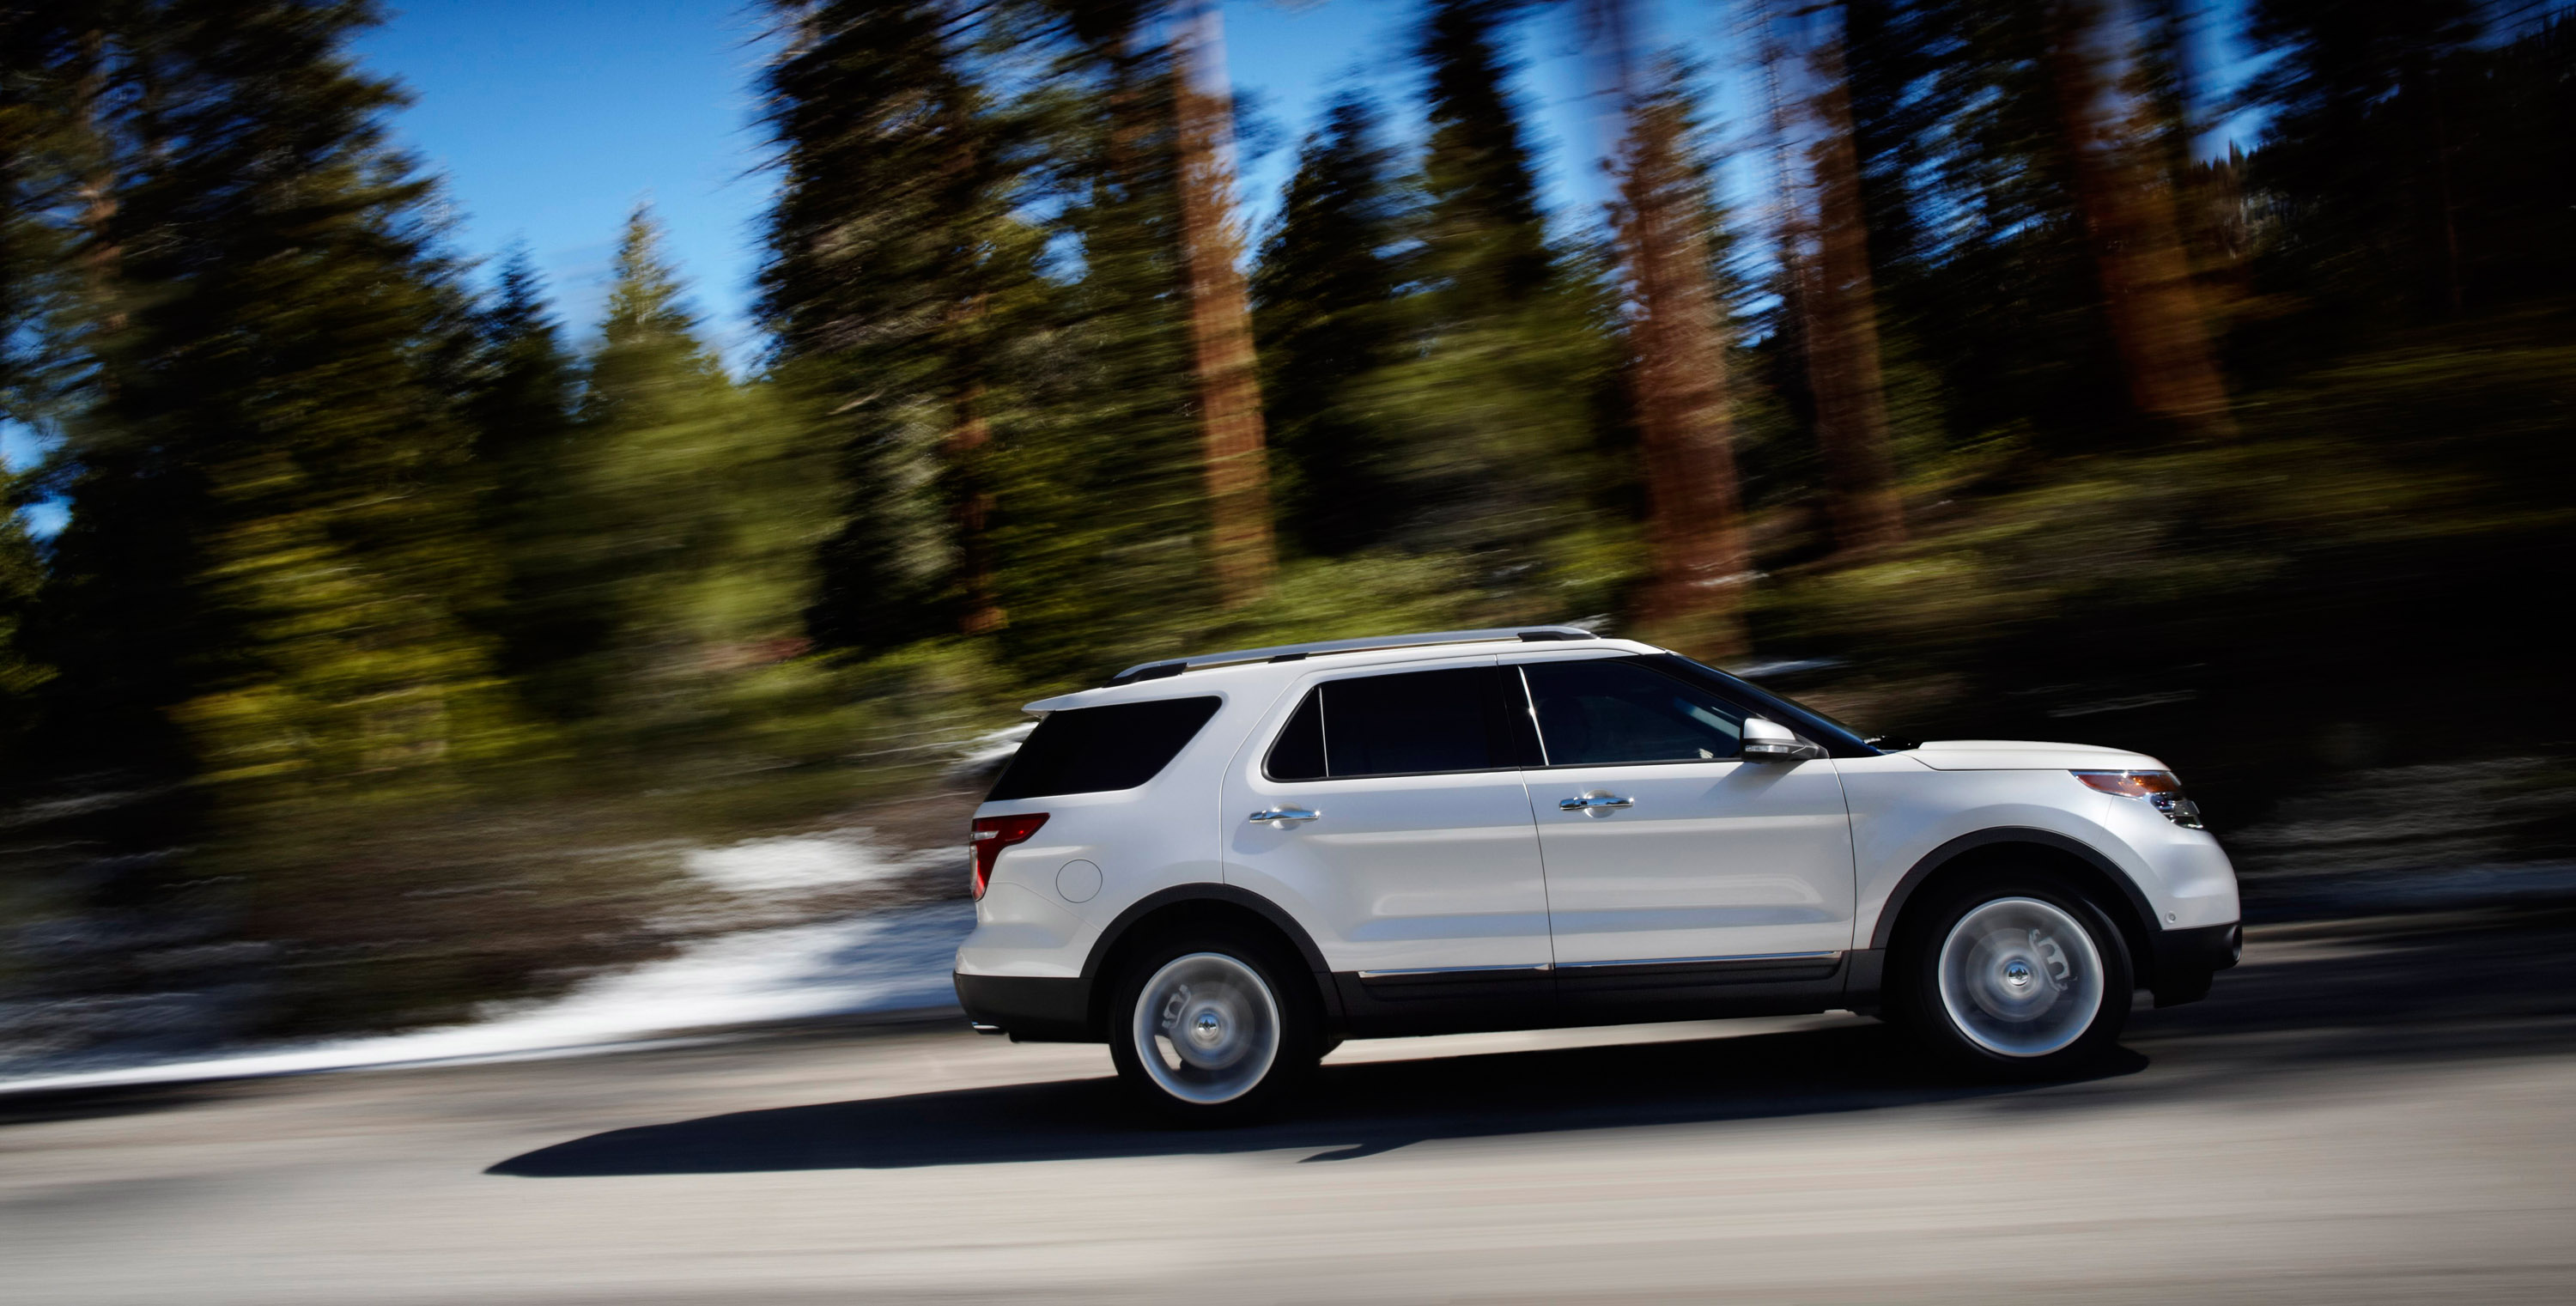 Astonishing 2011 Ford Explorer Earns Iihs Top Safety Pick Video Wiring Cloud Timewinrebemohammedshrineorg